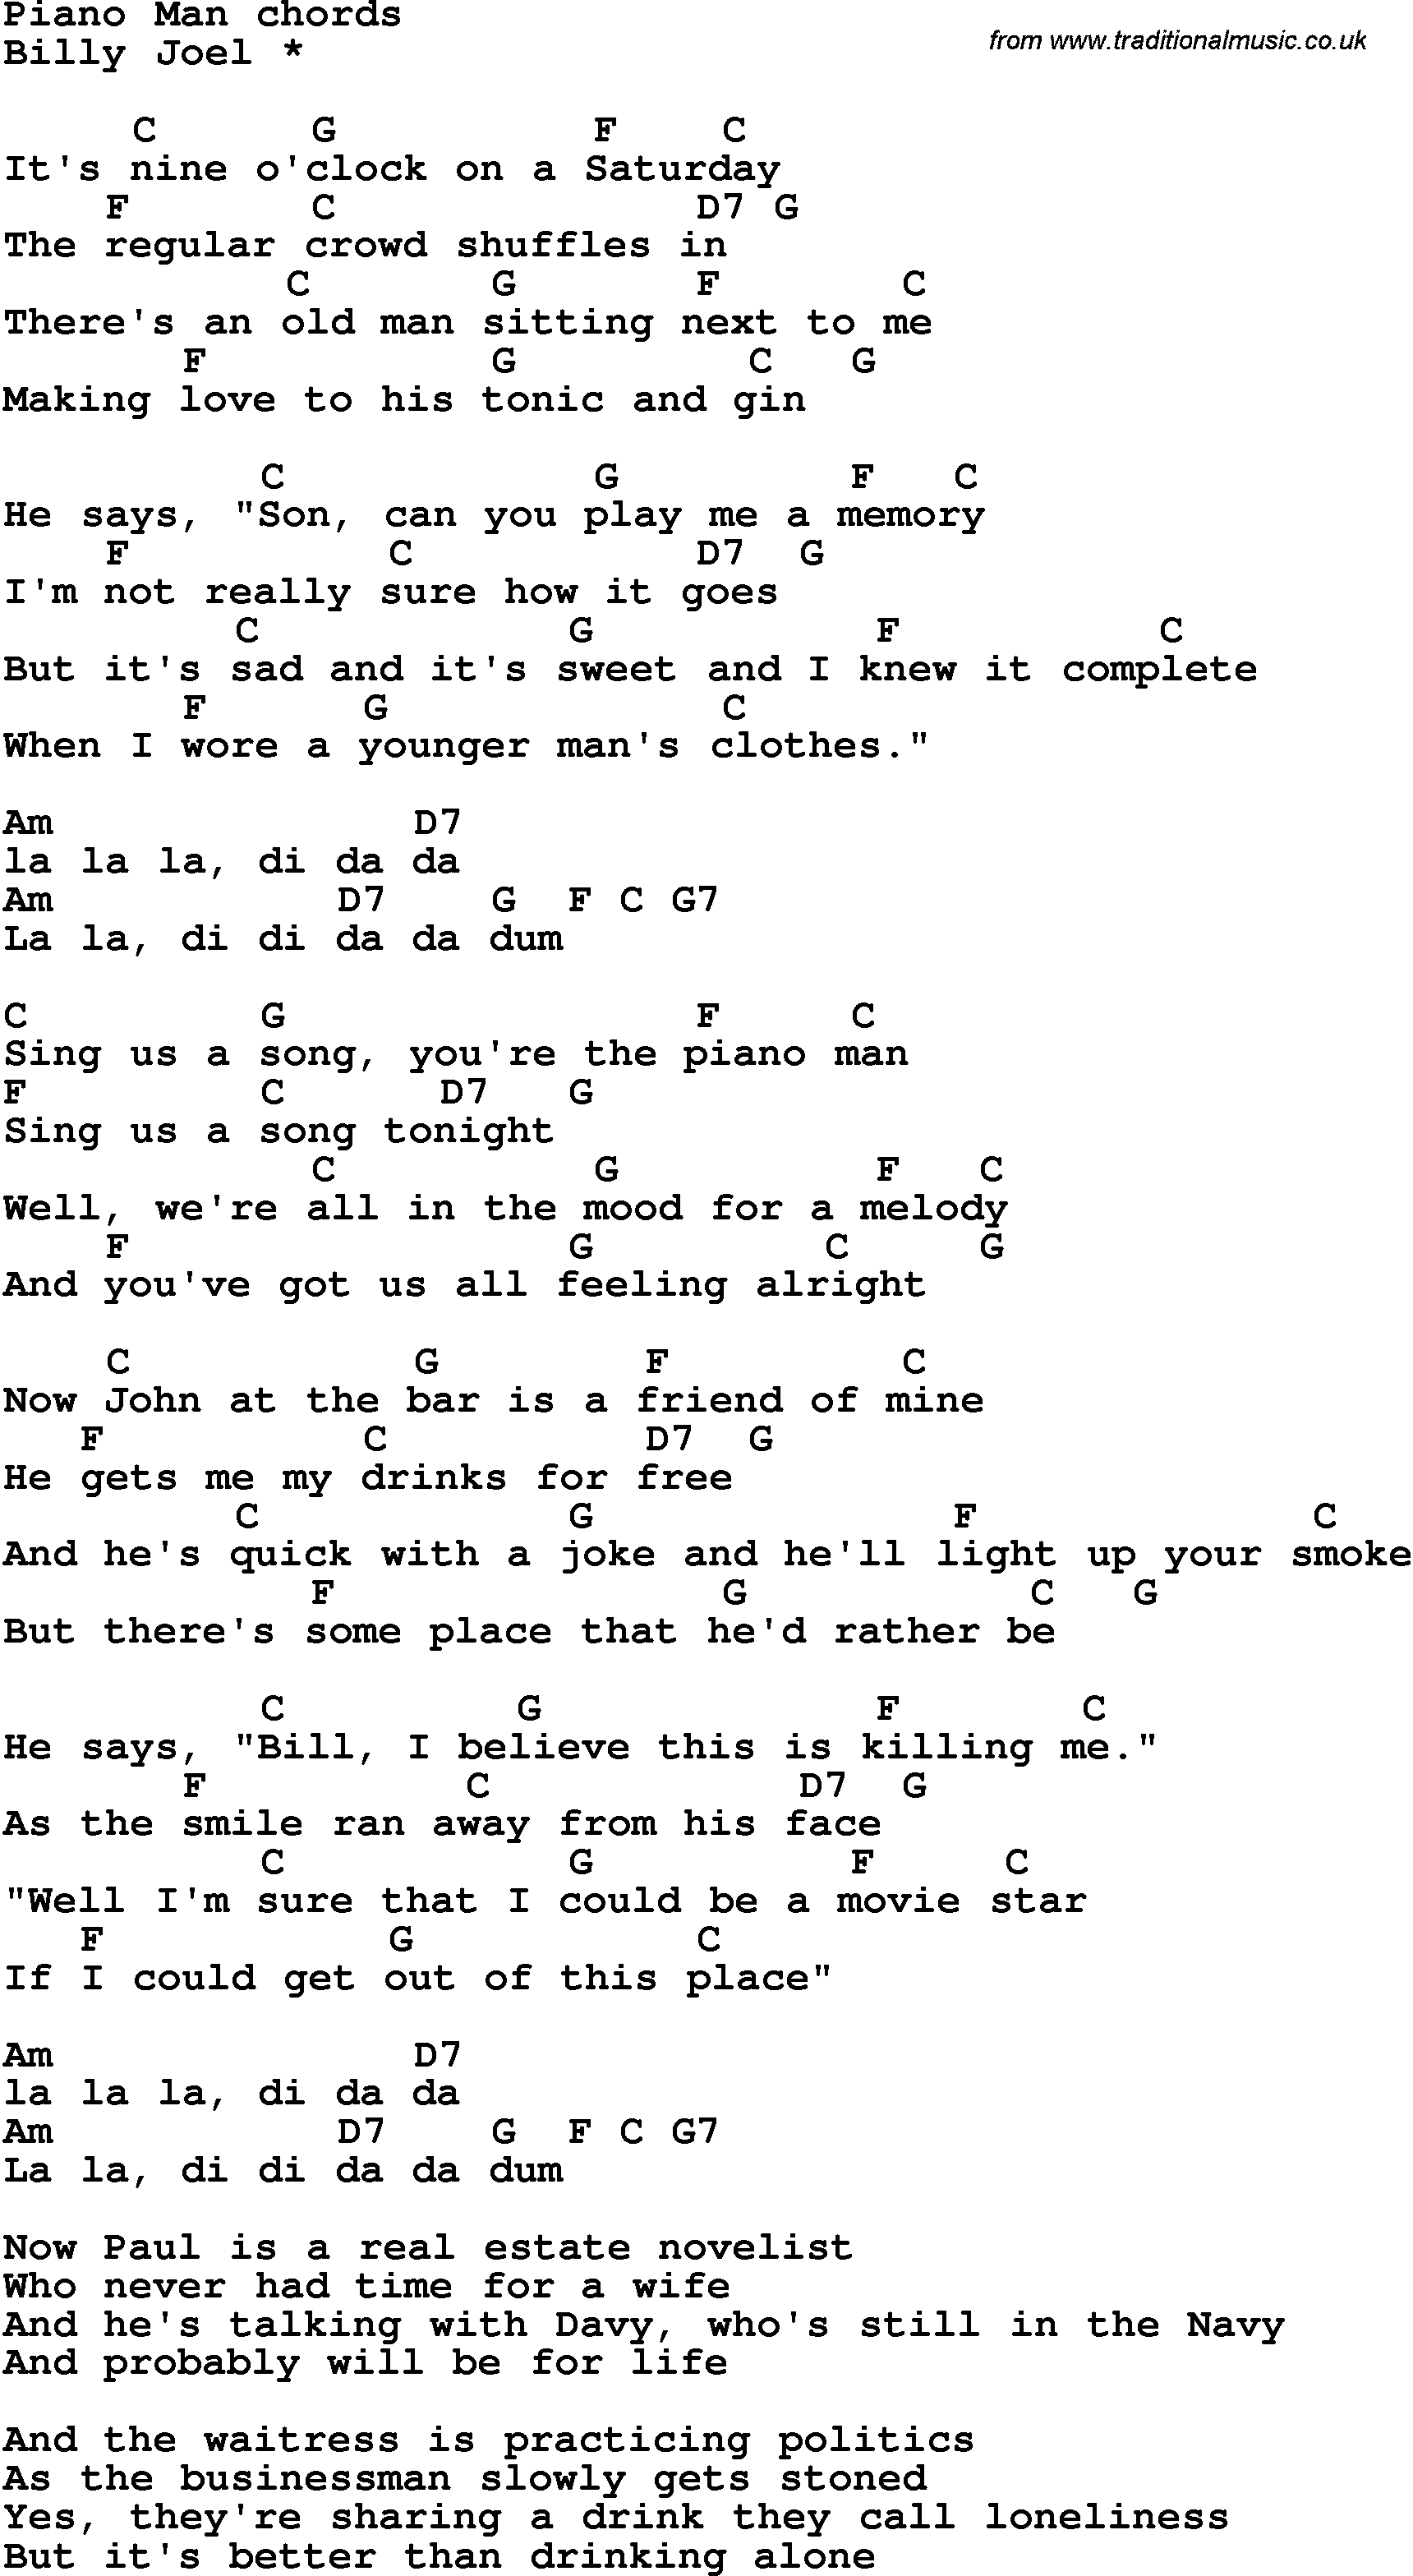 Piano Man Chords Song Lyrics With Guitar Chords For Piano Man